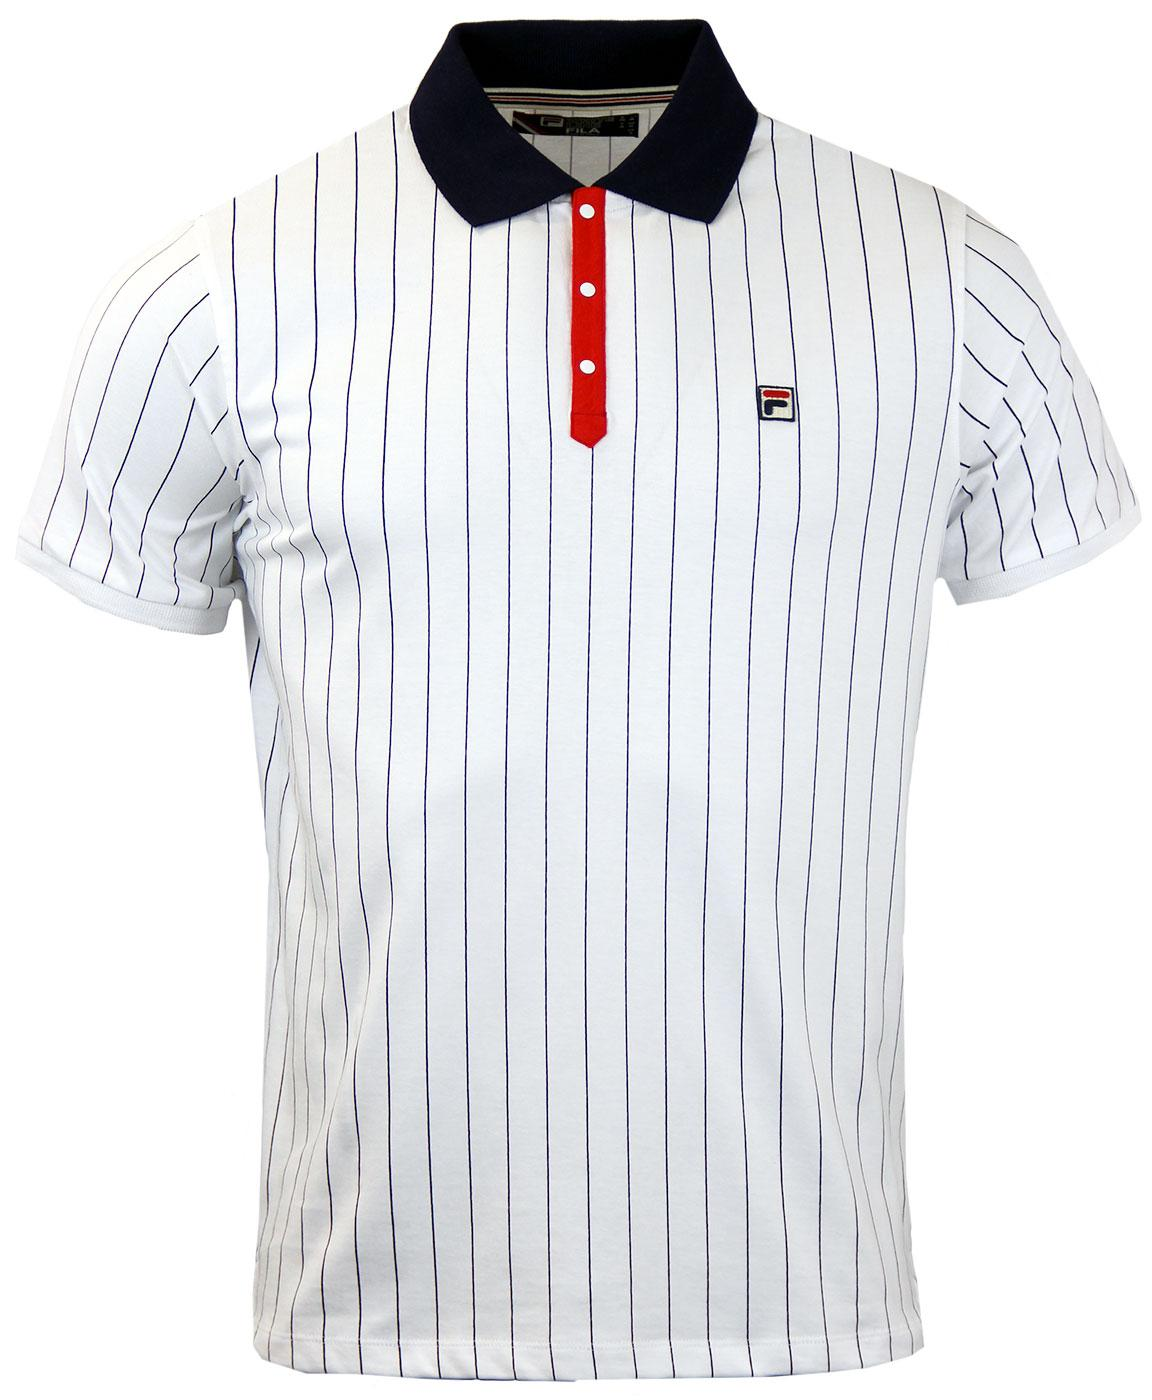 BB1 Borg Polo FILA VINTAGE Retro 70s Polo Top (WP)